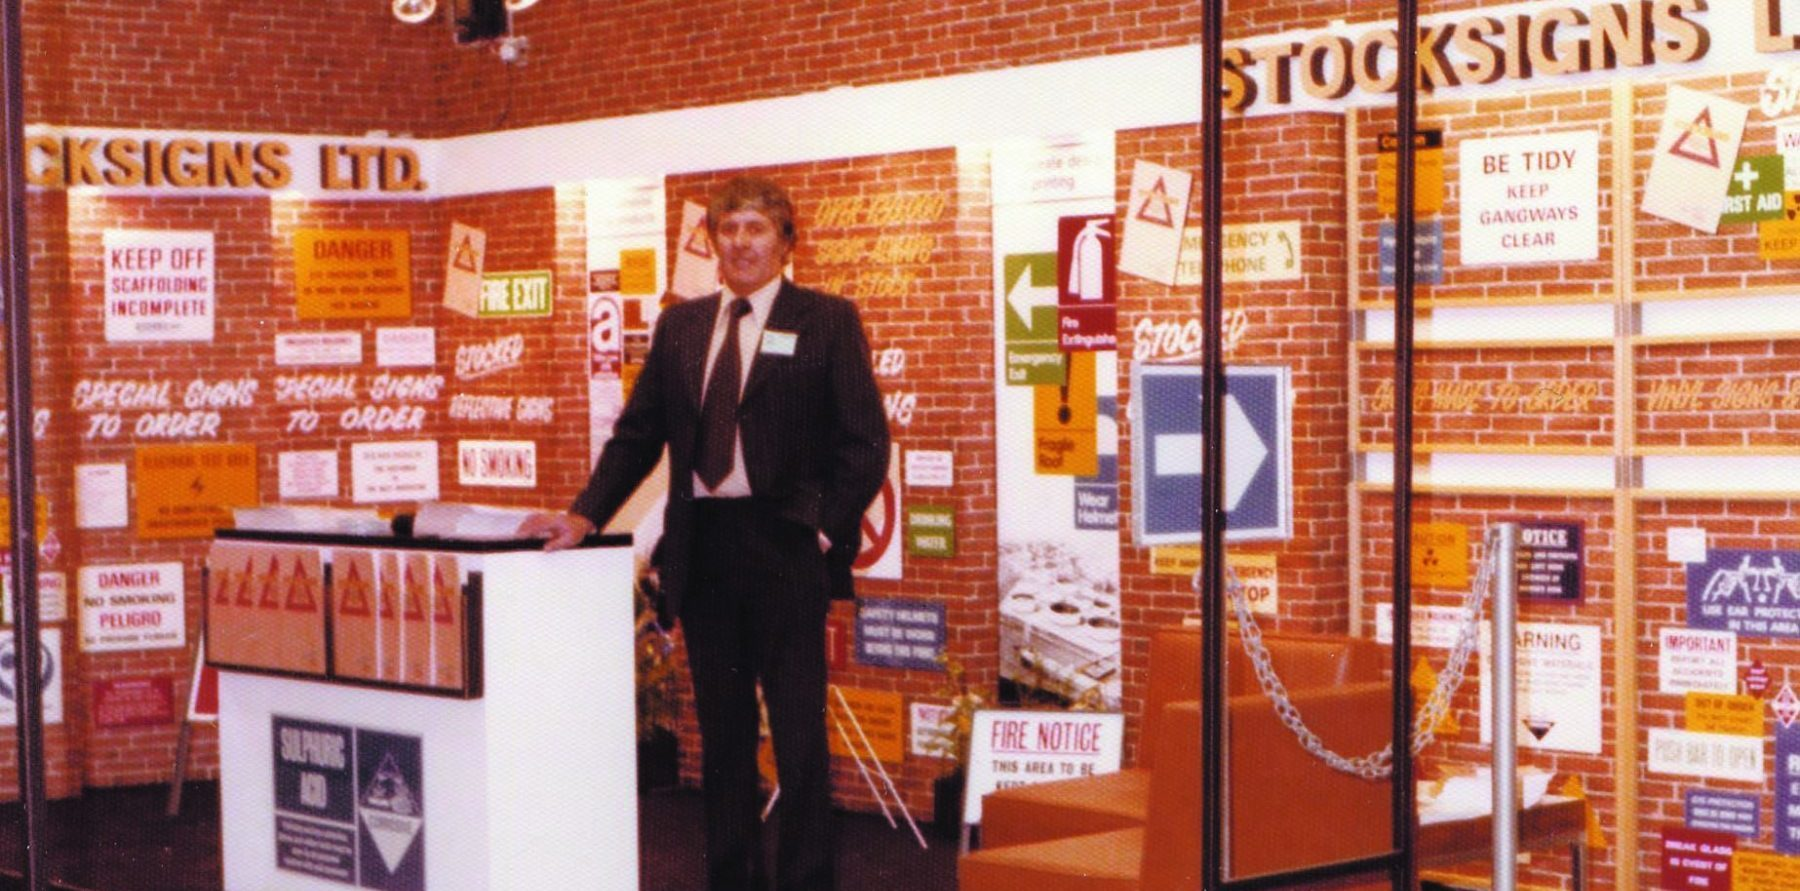 Stocksigns Exhibition Stand 1960